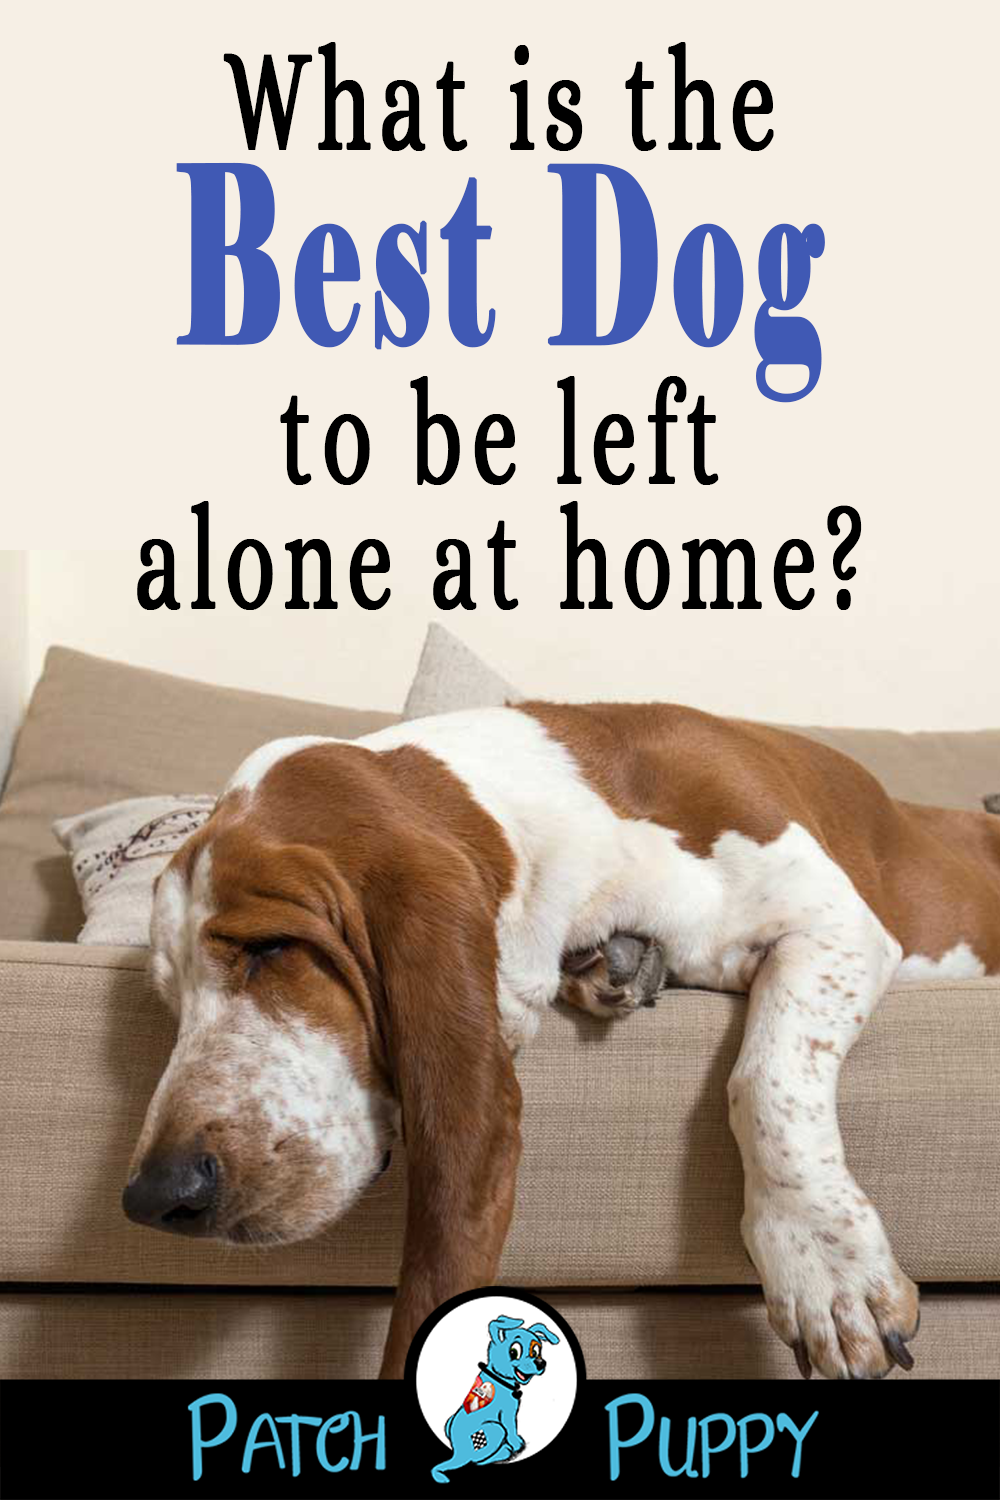 12 Dog Breeds That Can Stay Home Alone Patchpuppy Com Dog Breeds Dogs Scary Dogs